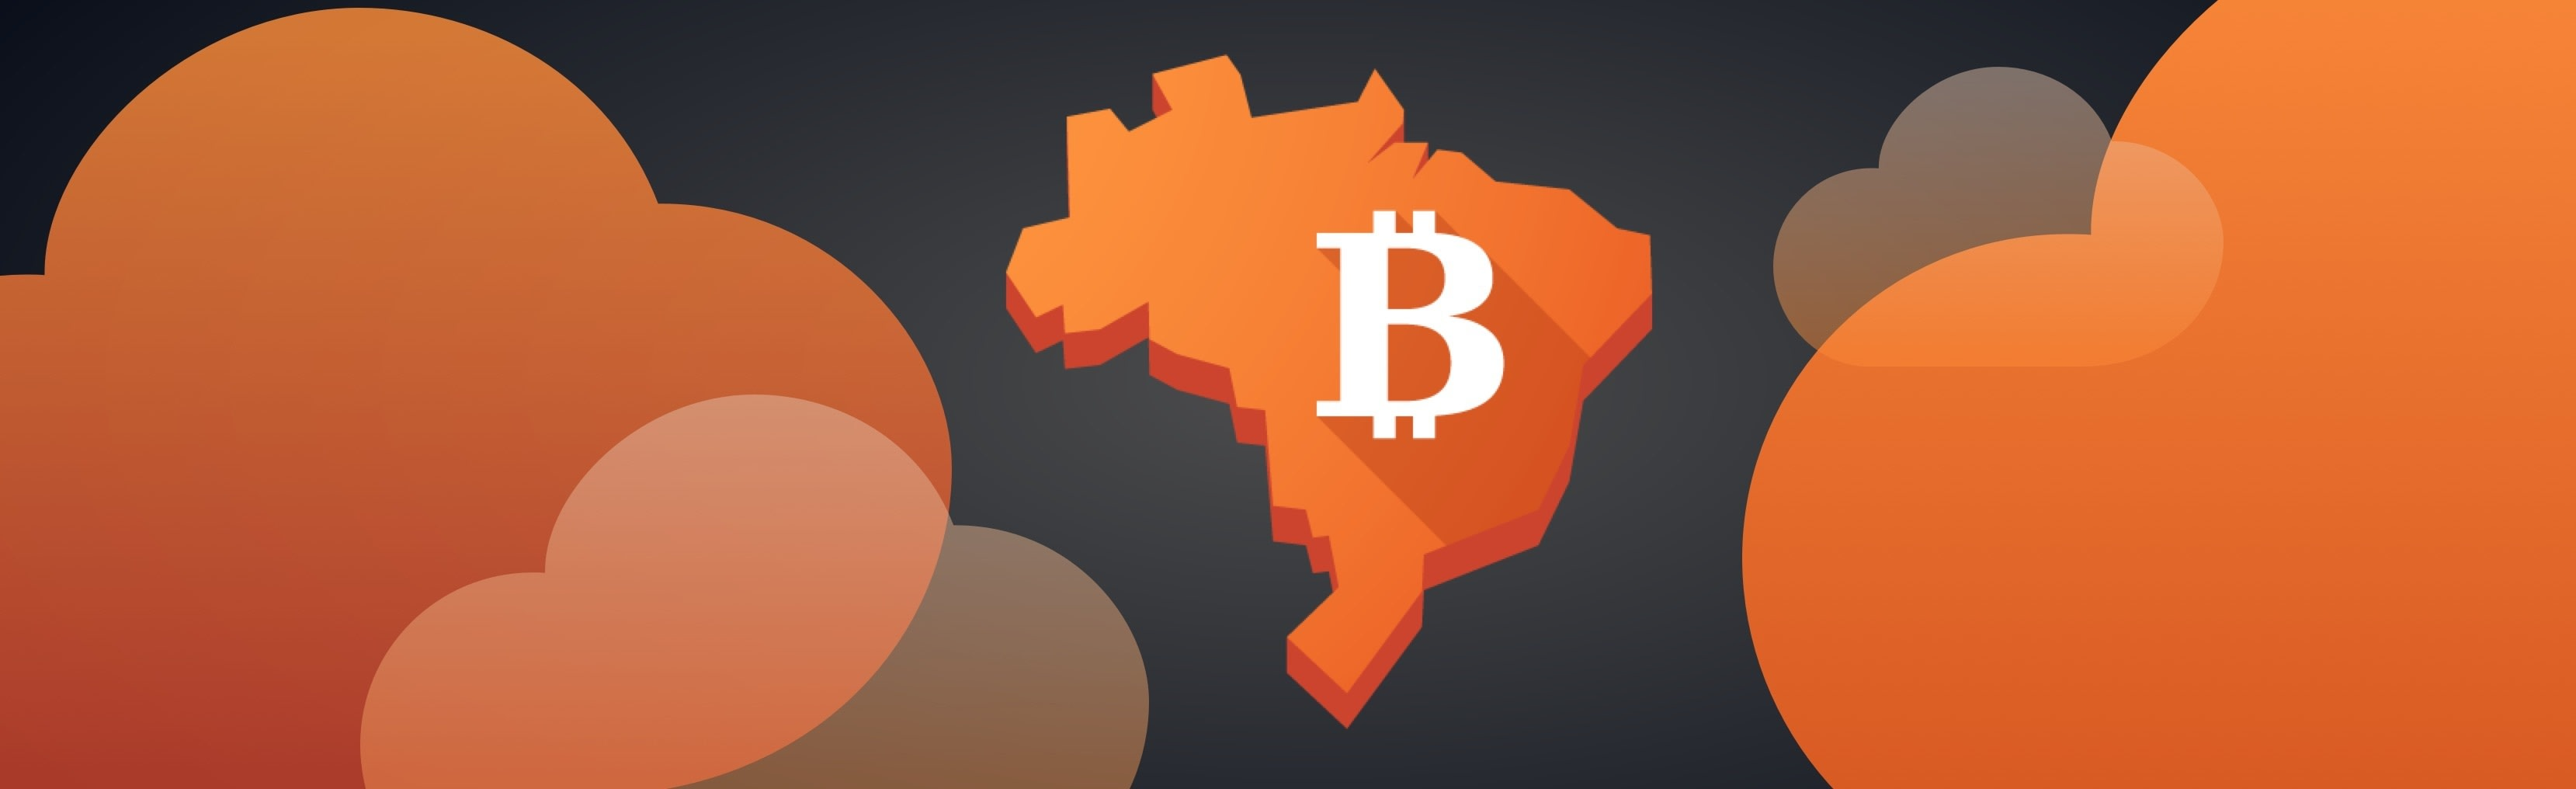 How crypto regulations are moving adoption in Brazil